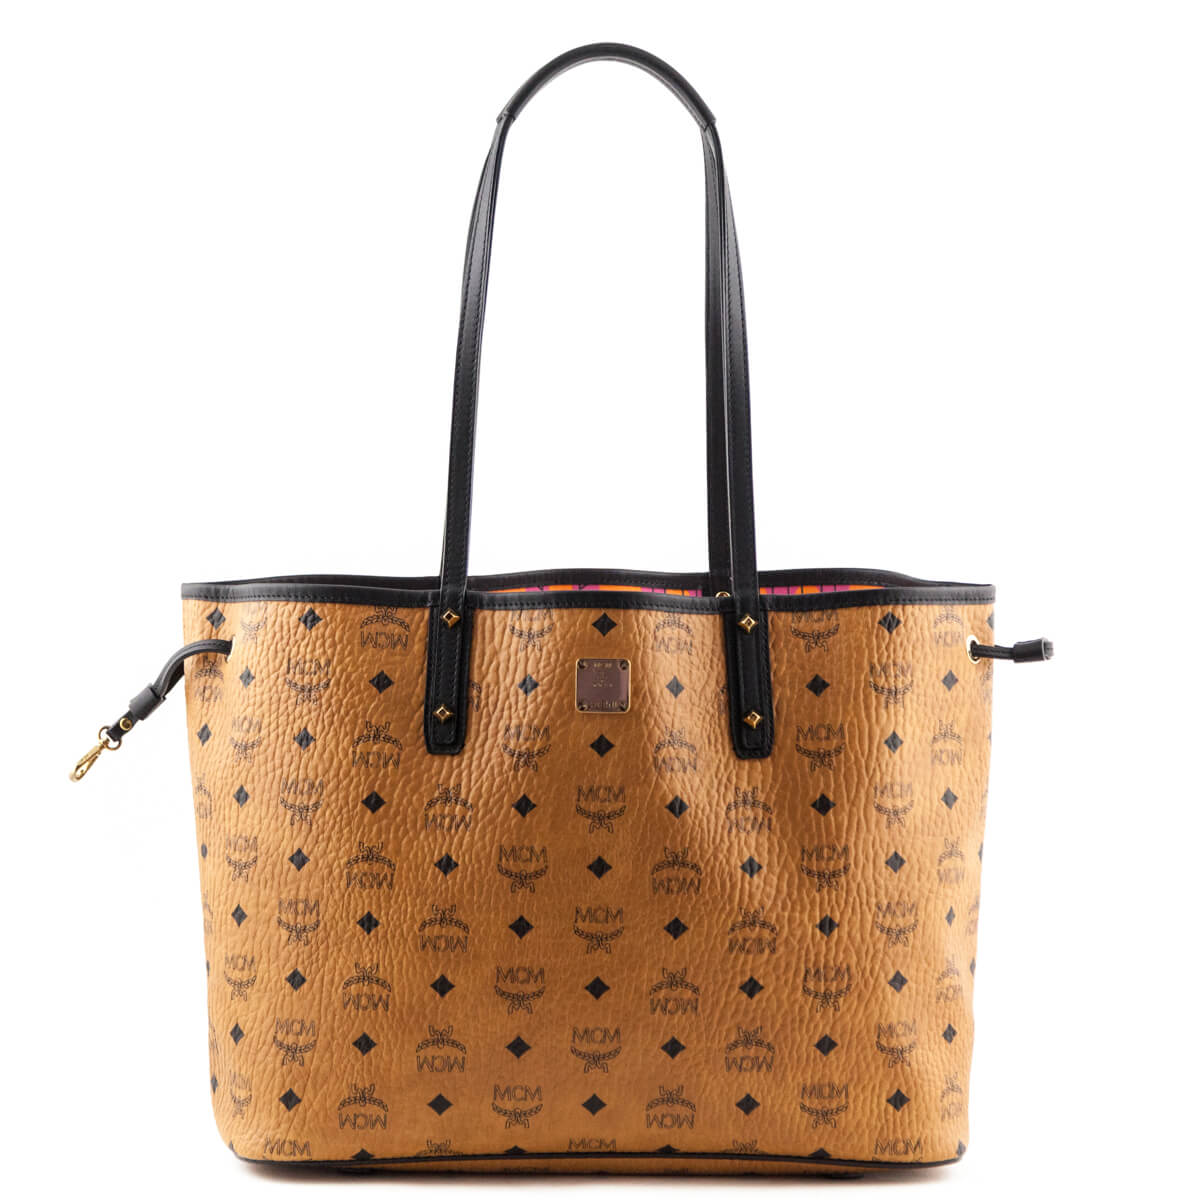 302782f25 MCM Visetos Medium Reversible Shopper Tote with Pouch - LOVE that BAG -  Preowned Authentic Designer ...